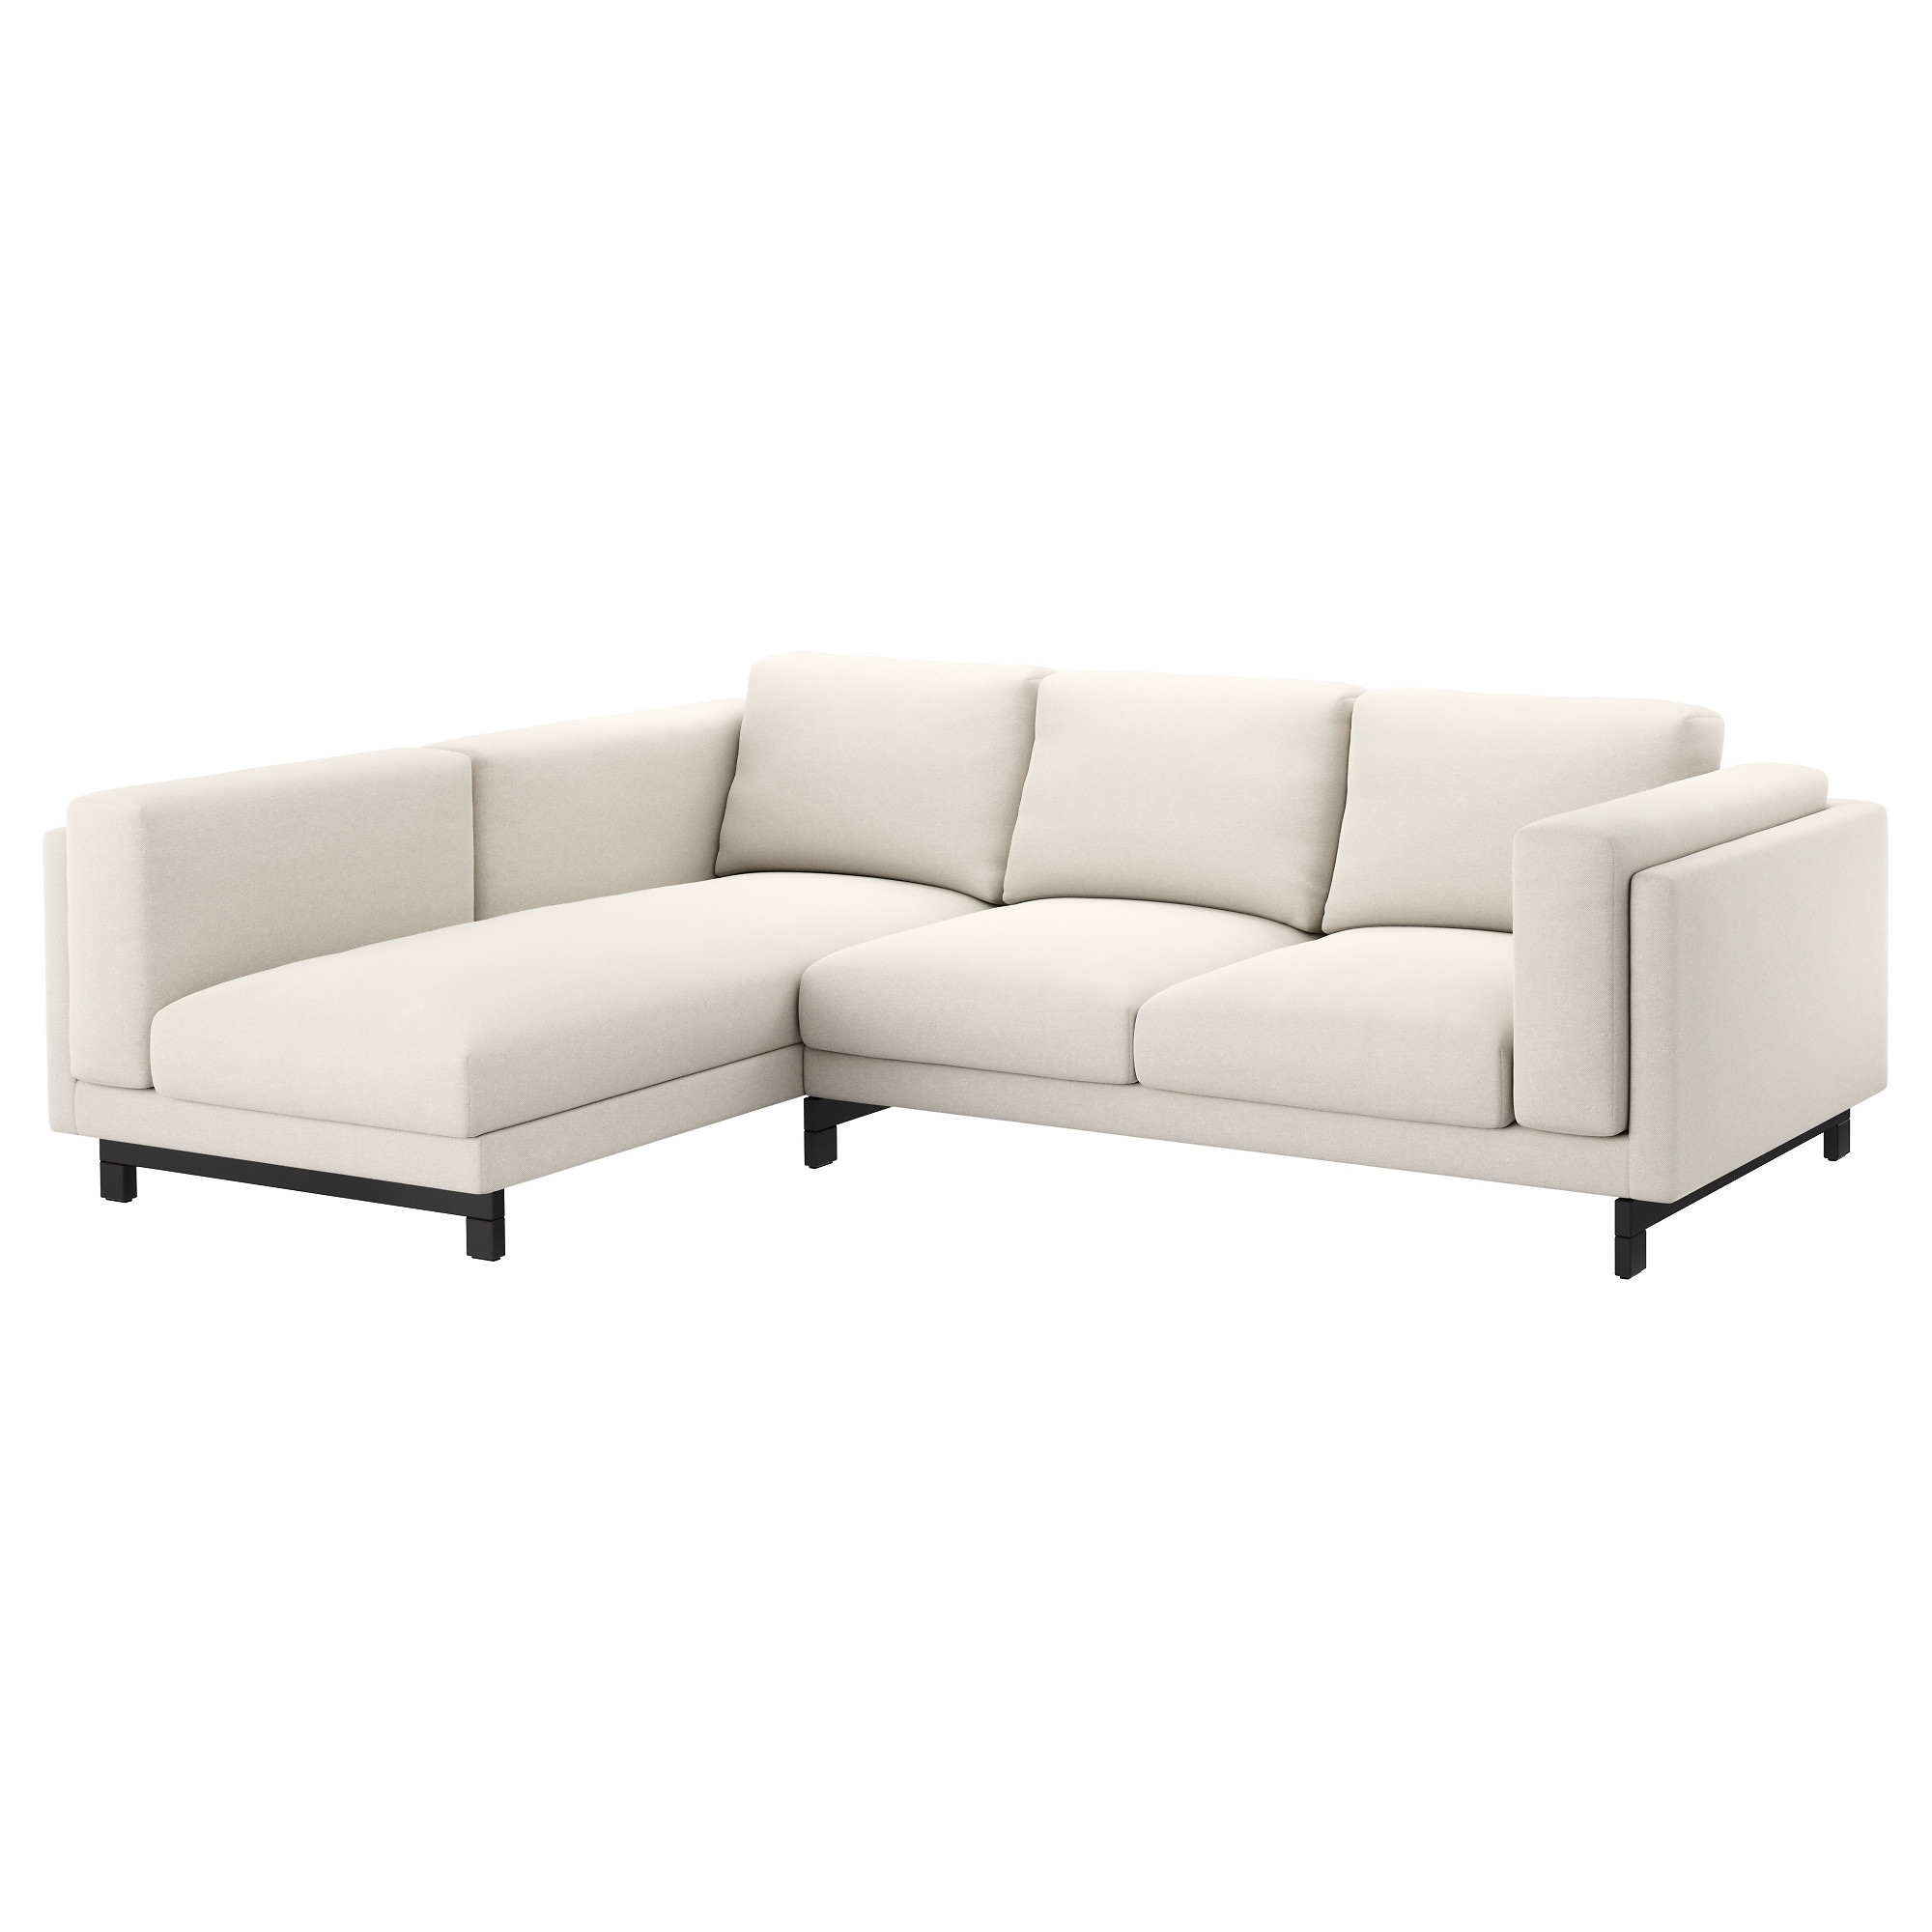 2er sofa ikea  NOCKEBY Sofa - left/Tallmyra light beige, with chaise/wood - IKEA